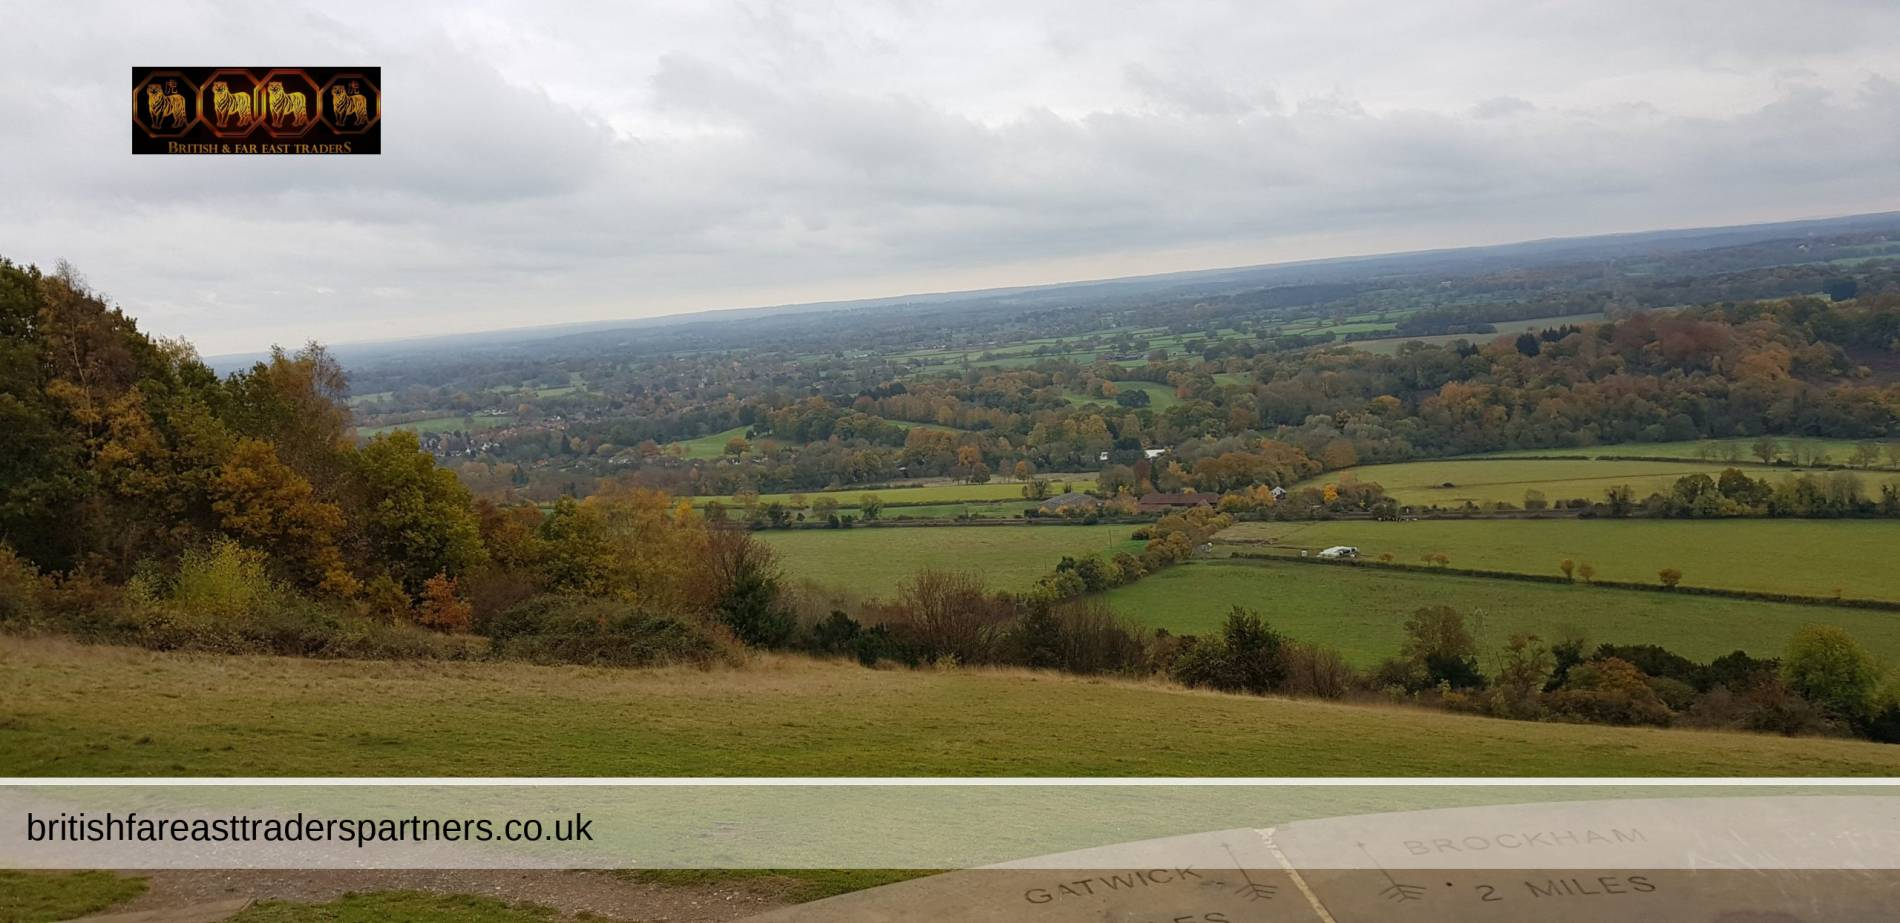 DAYS OUT IN ENGLAND: PICTURESQUE BOXHILL, SURREY, ENGLAND